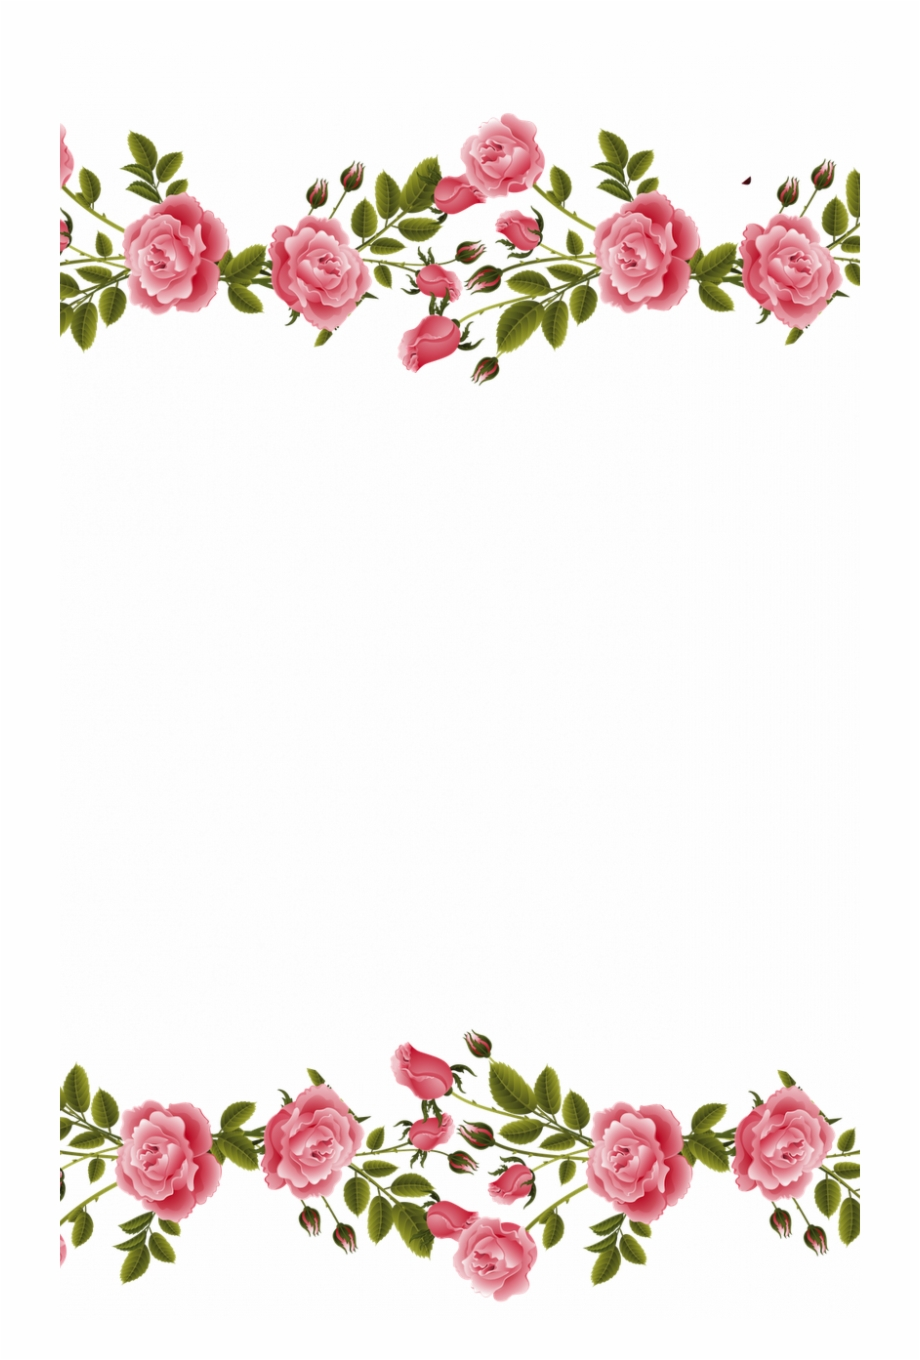 Pink Rose Wallpaper Border Vintage Rose Rose Vine Transparent